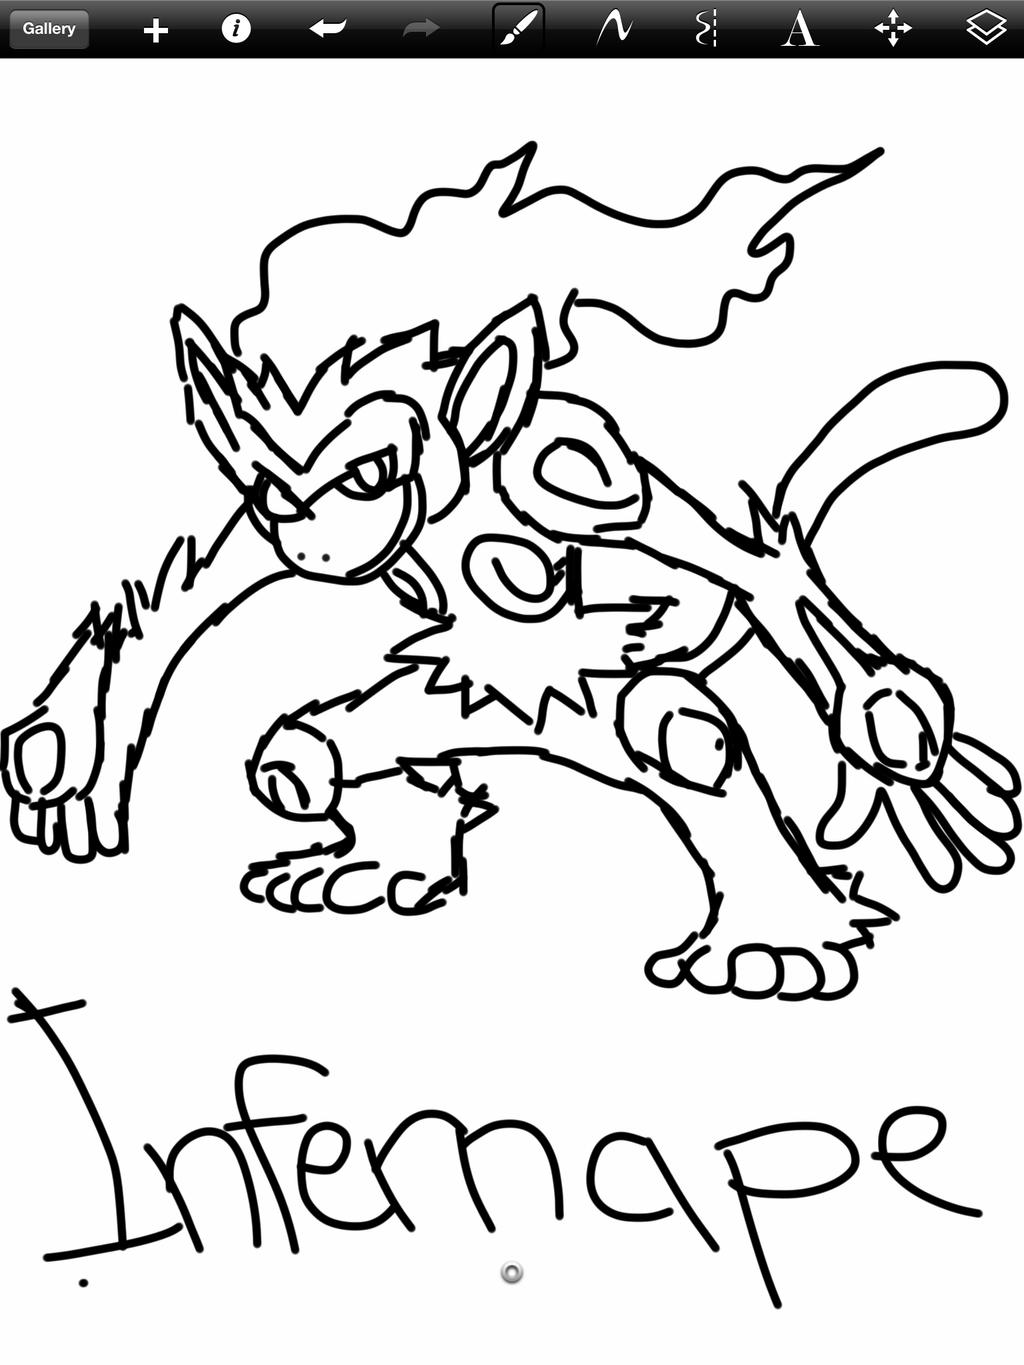 torterra coloring pages - photo#15